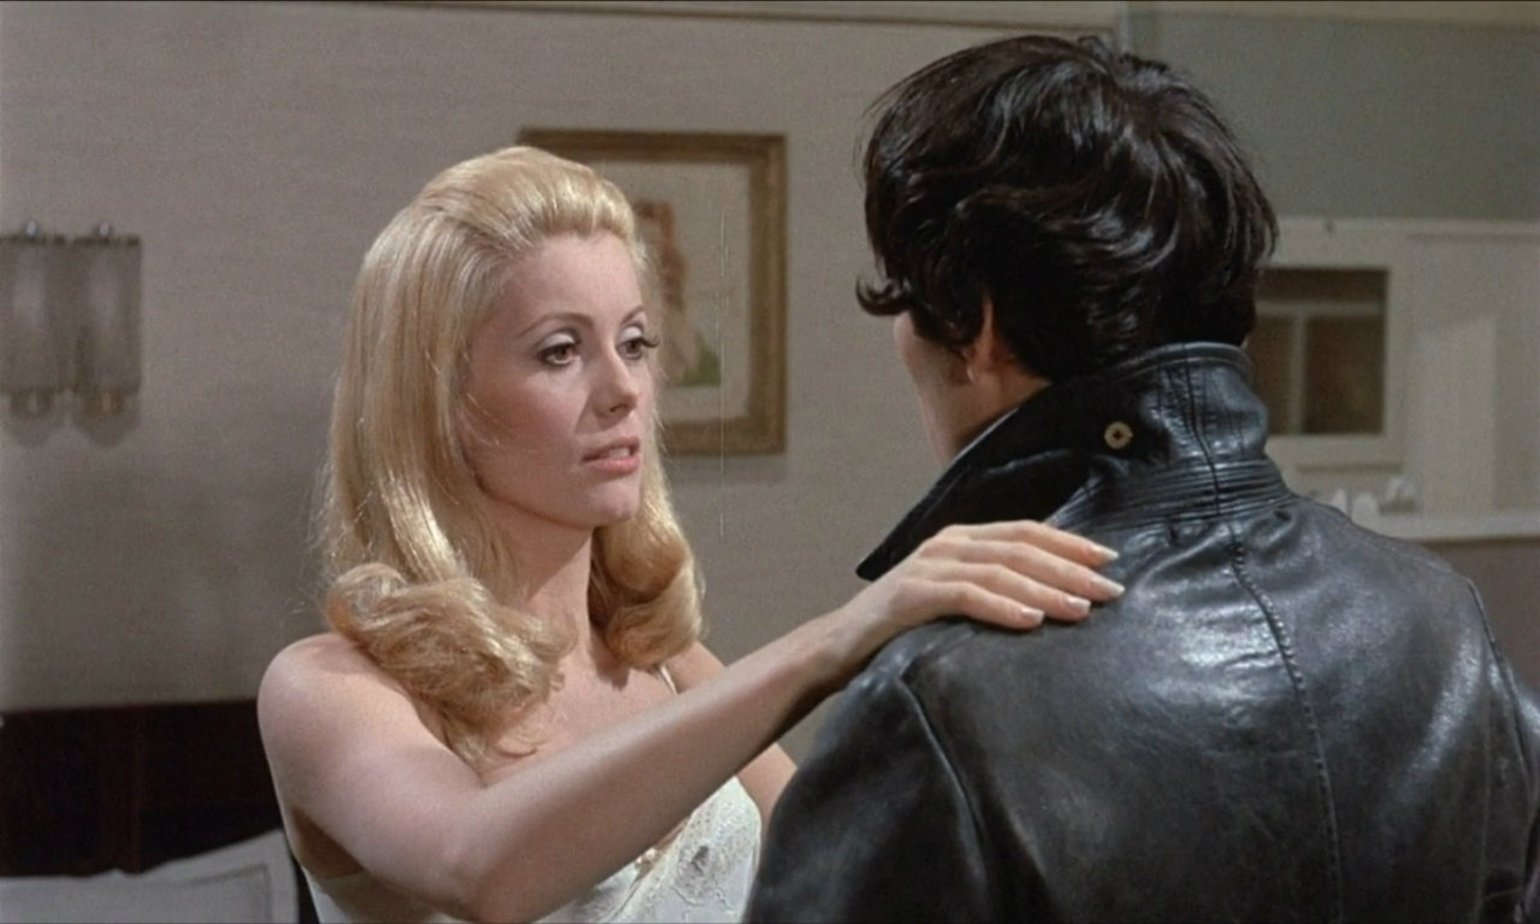 catherine deneuve essay Irony is not enough essay on my life as catherine deneuve - in which a female classics lecturer in a snowy city contemplates the possibility of an intimate.